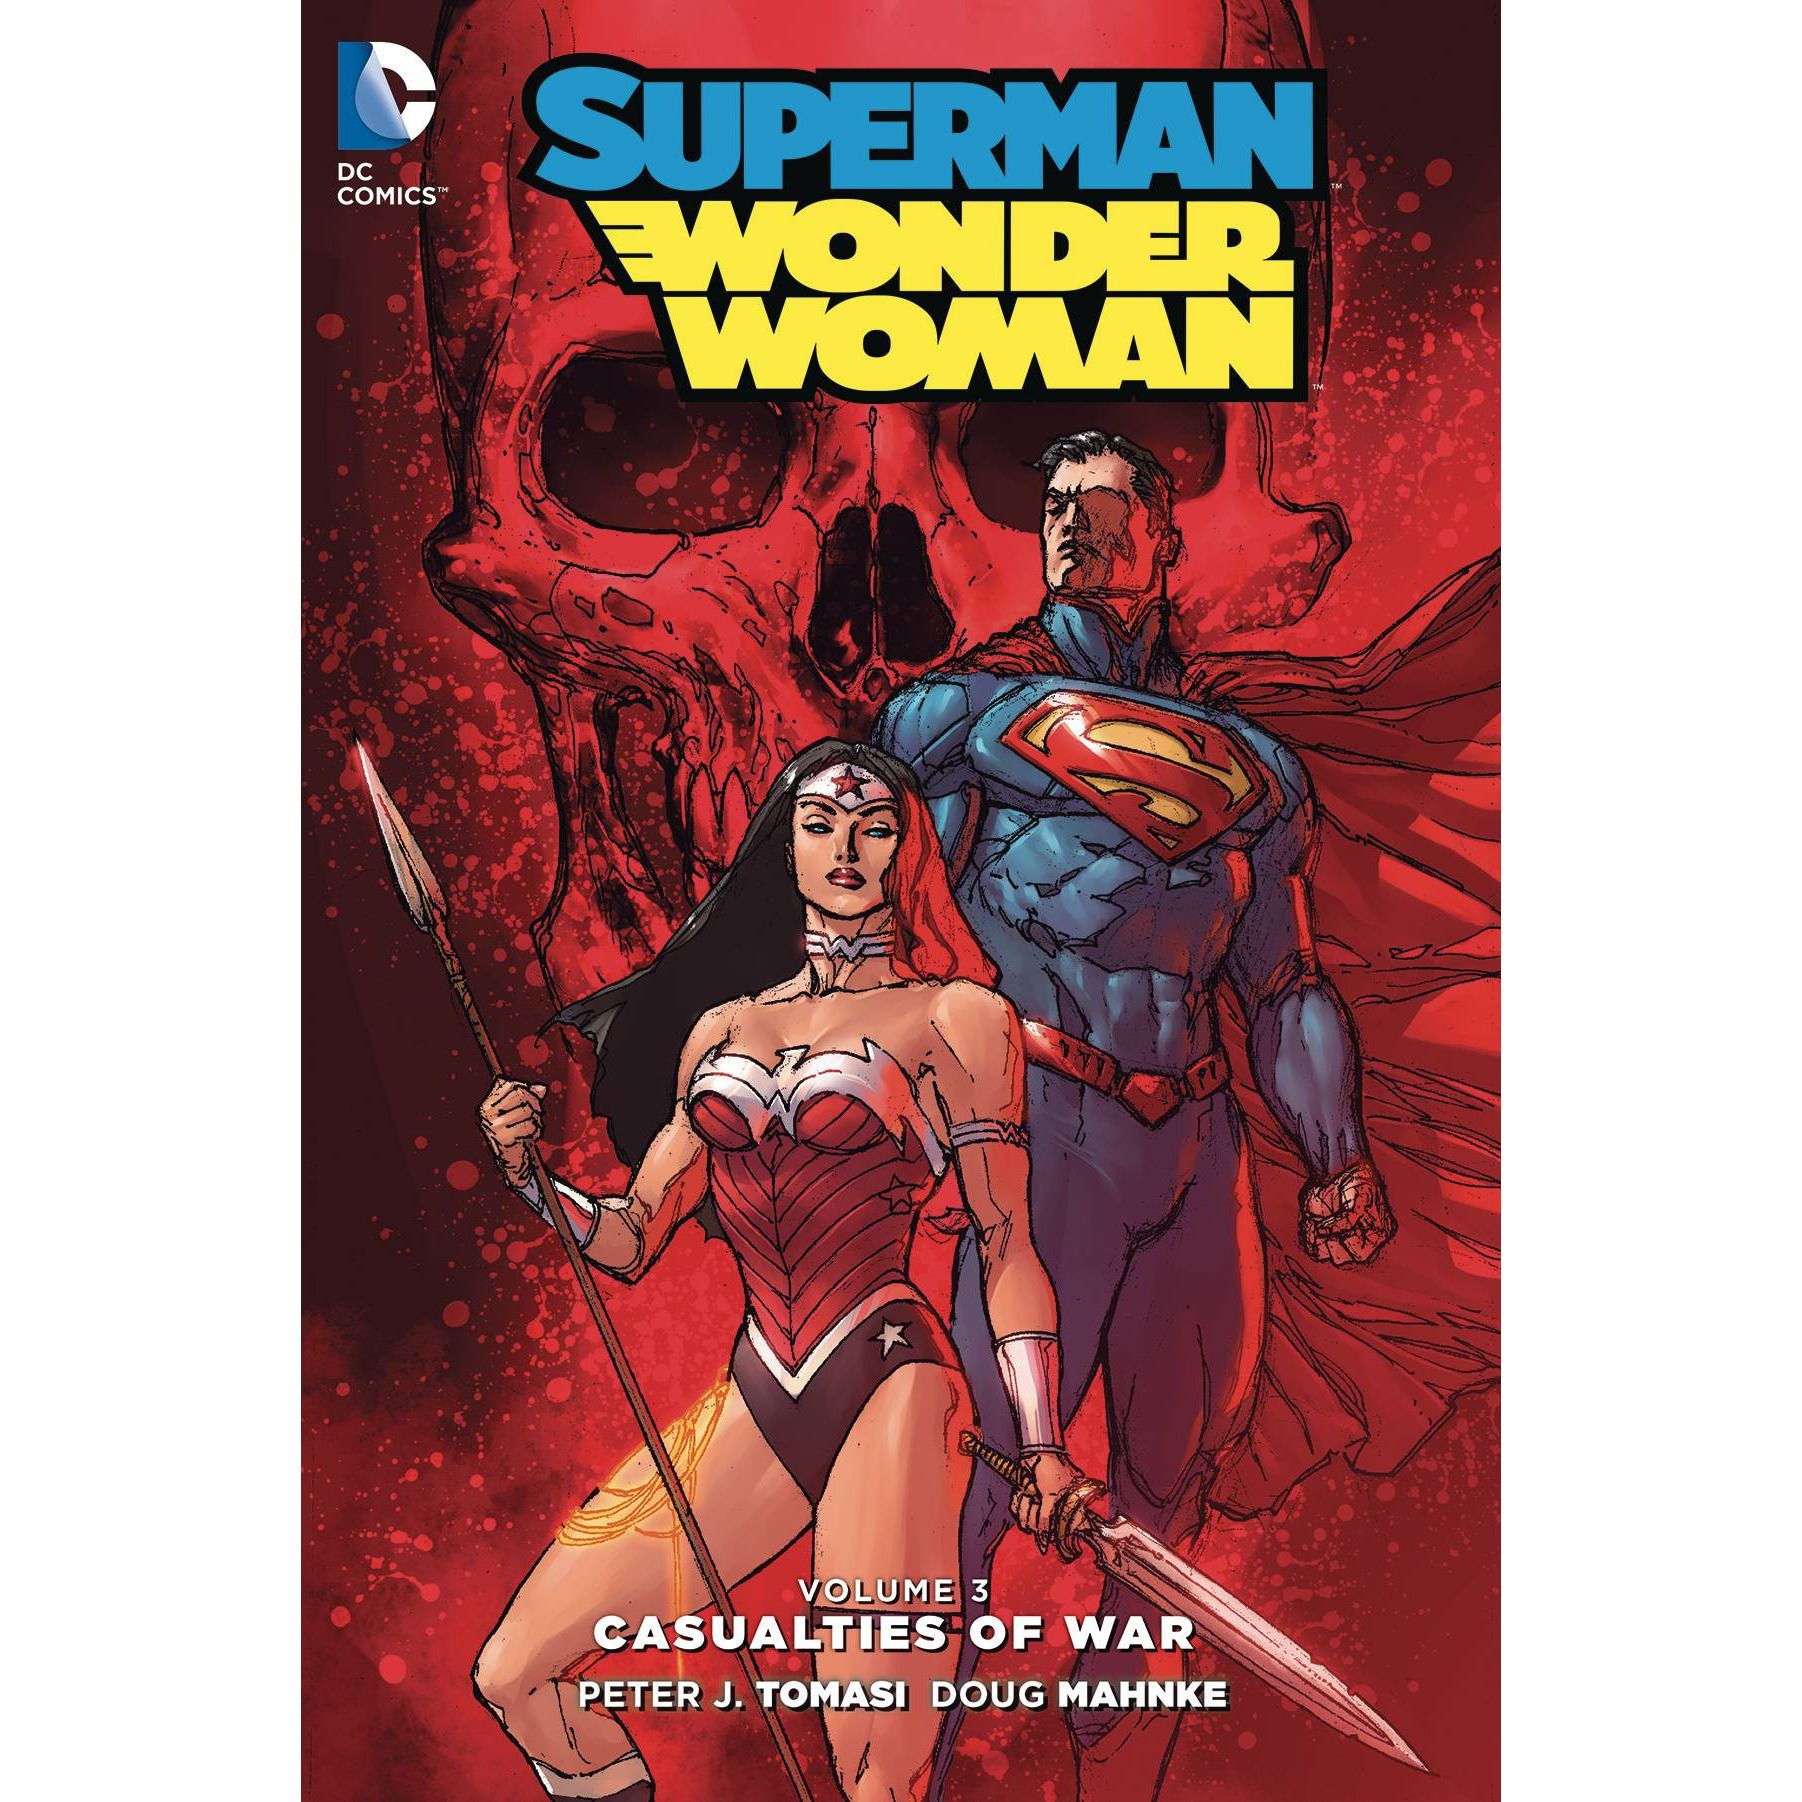 Superman & Wonder Woman: Casualties of War Vol. 3 TP Uncanny!